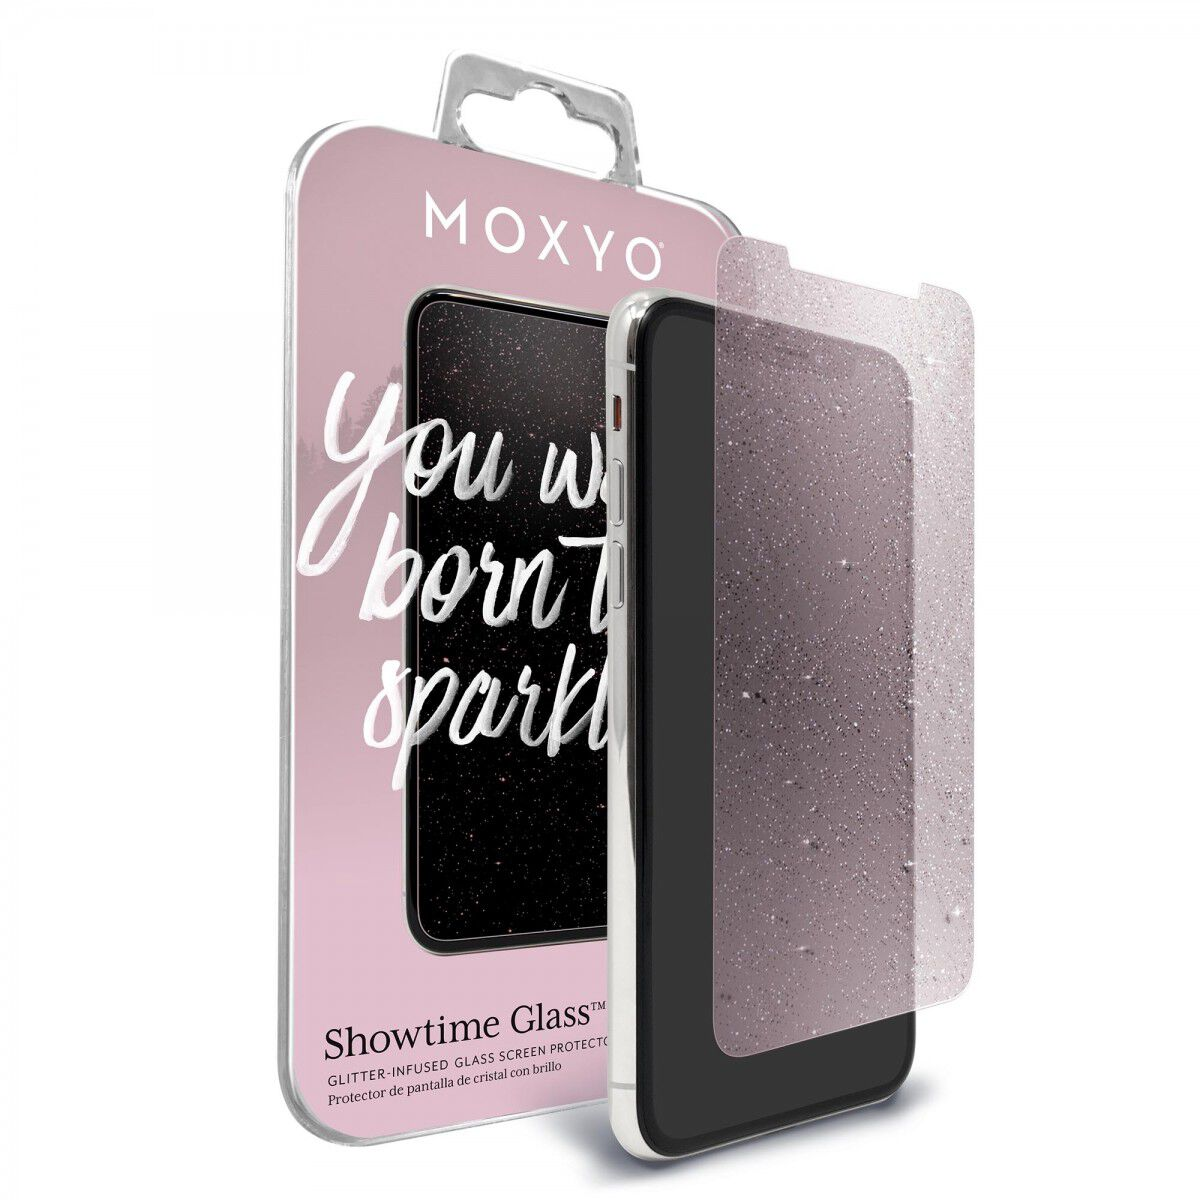 Large glitter glass screen protector with packaging for iPhone 11 Pro Max and iPhone Xs Max